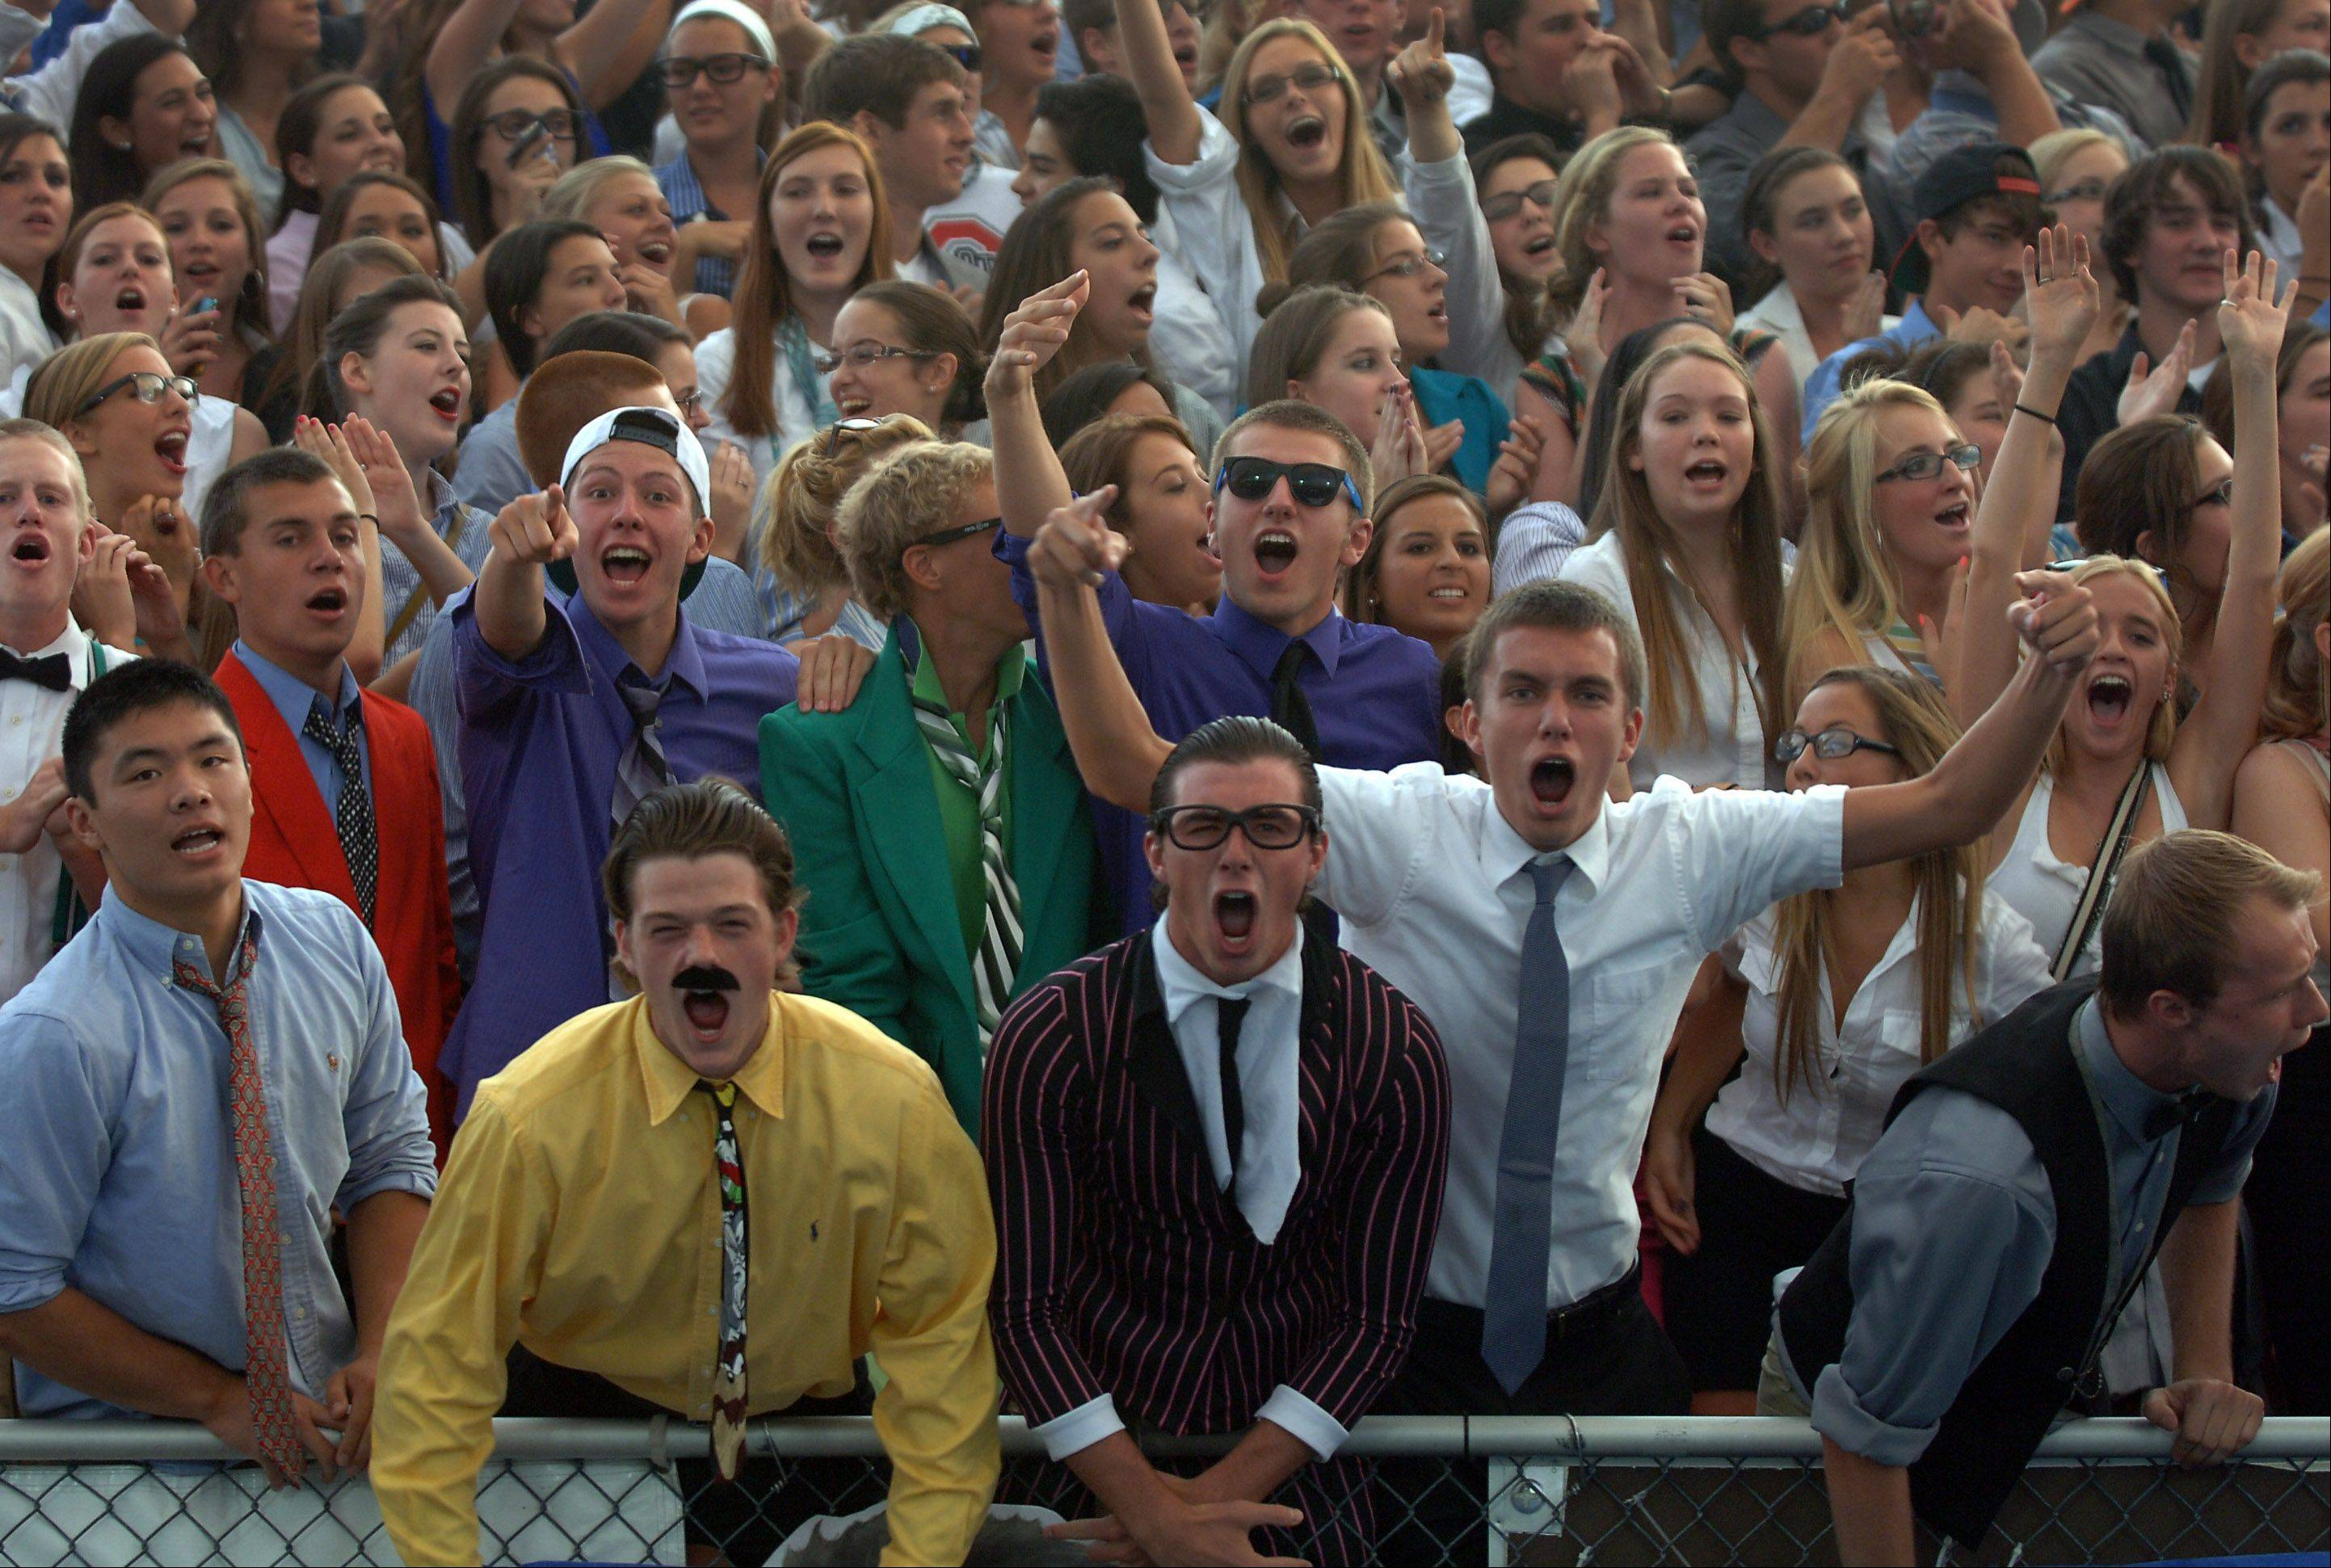 Lake Zurich fans cheer on their teams as the Bears take the field Friday night in Lake Zurich.